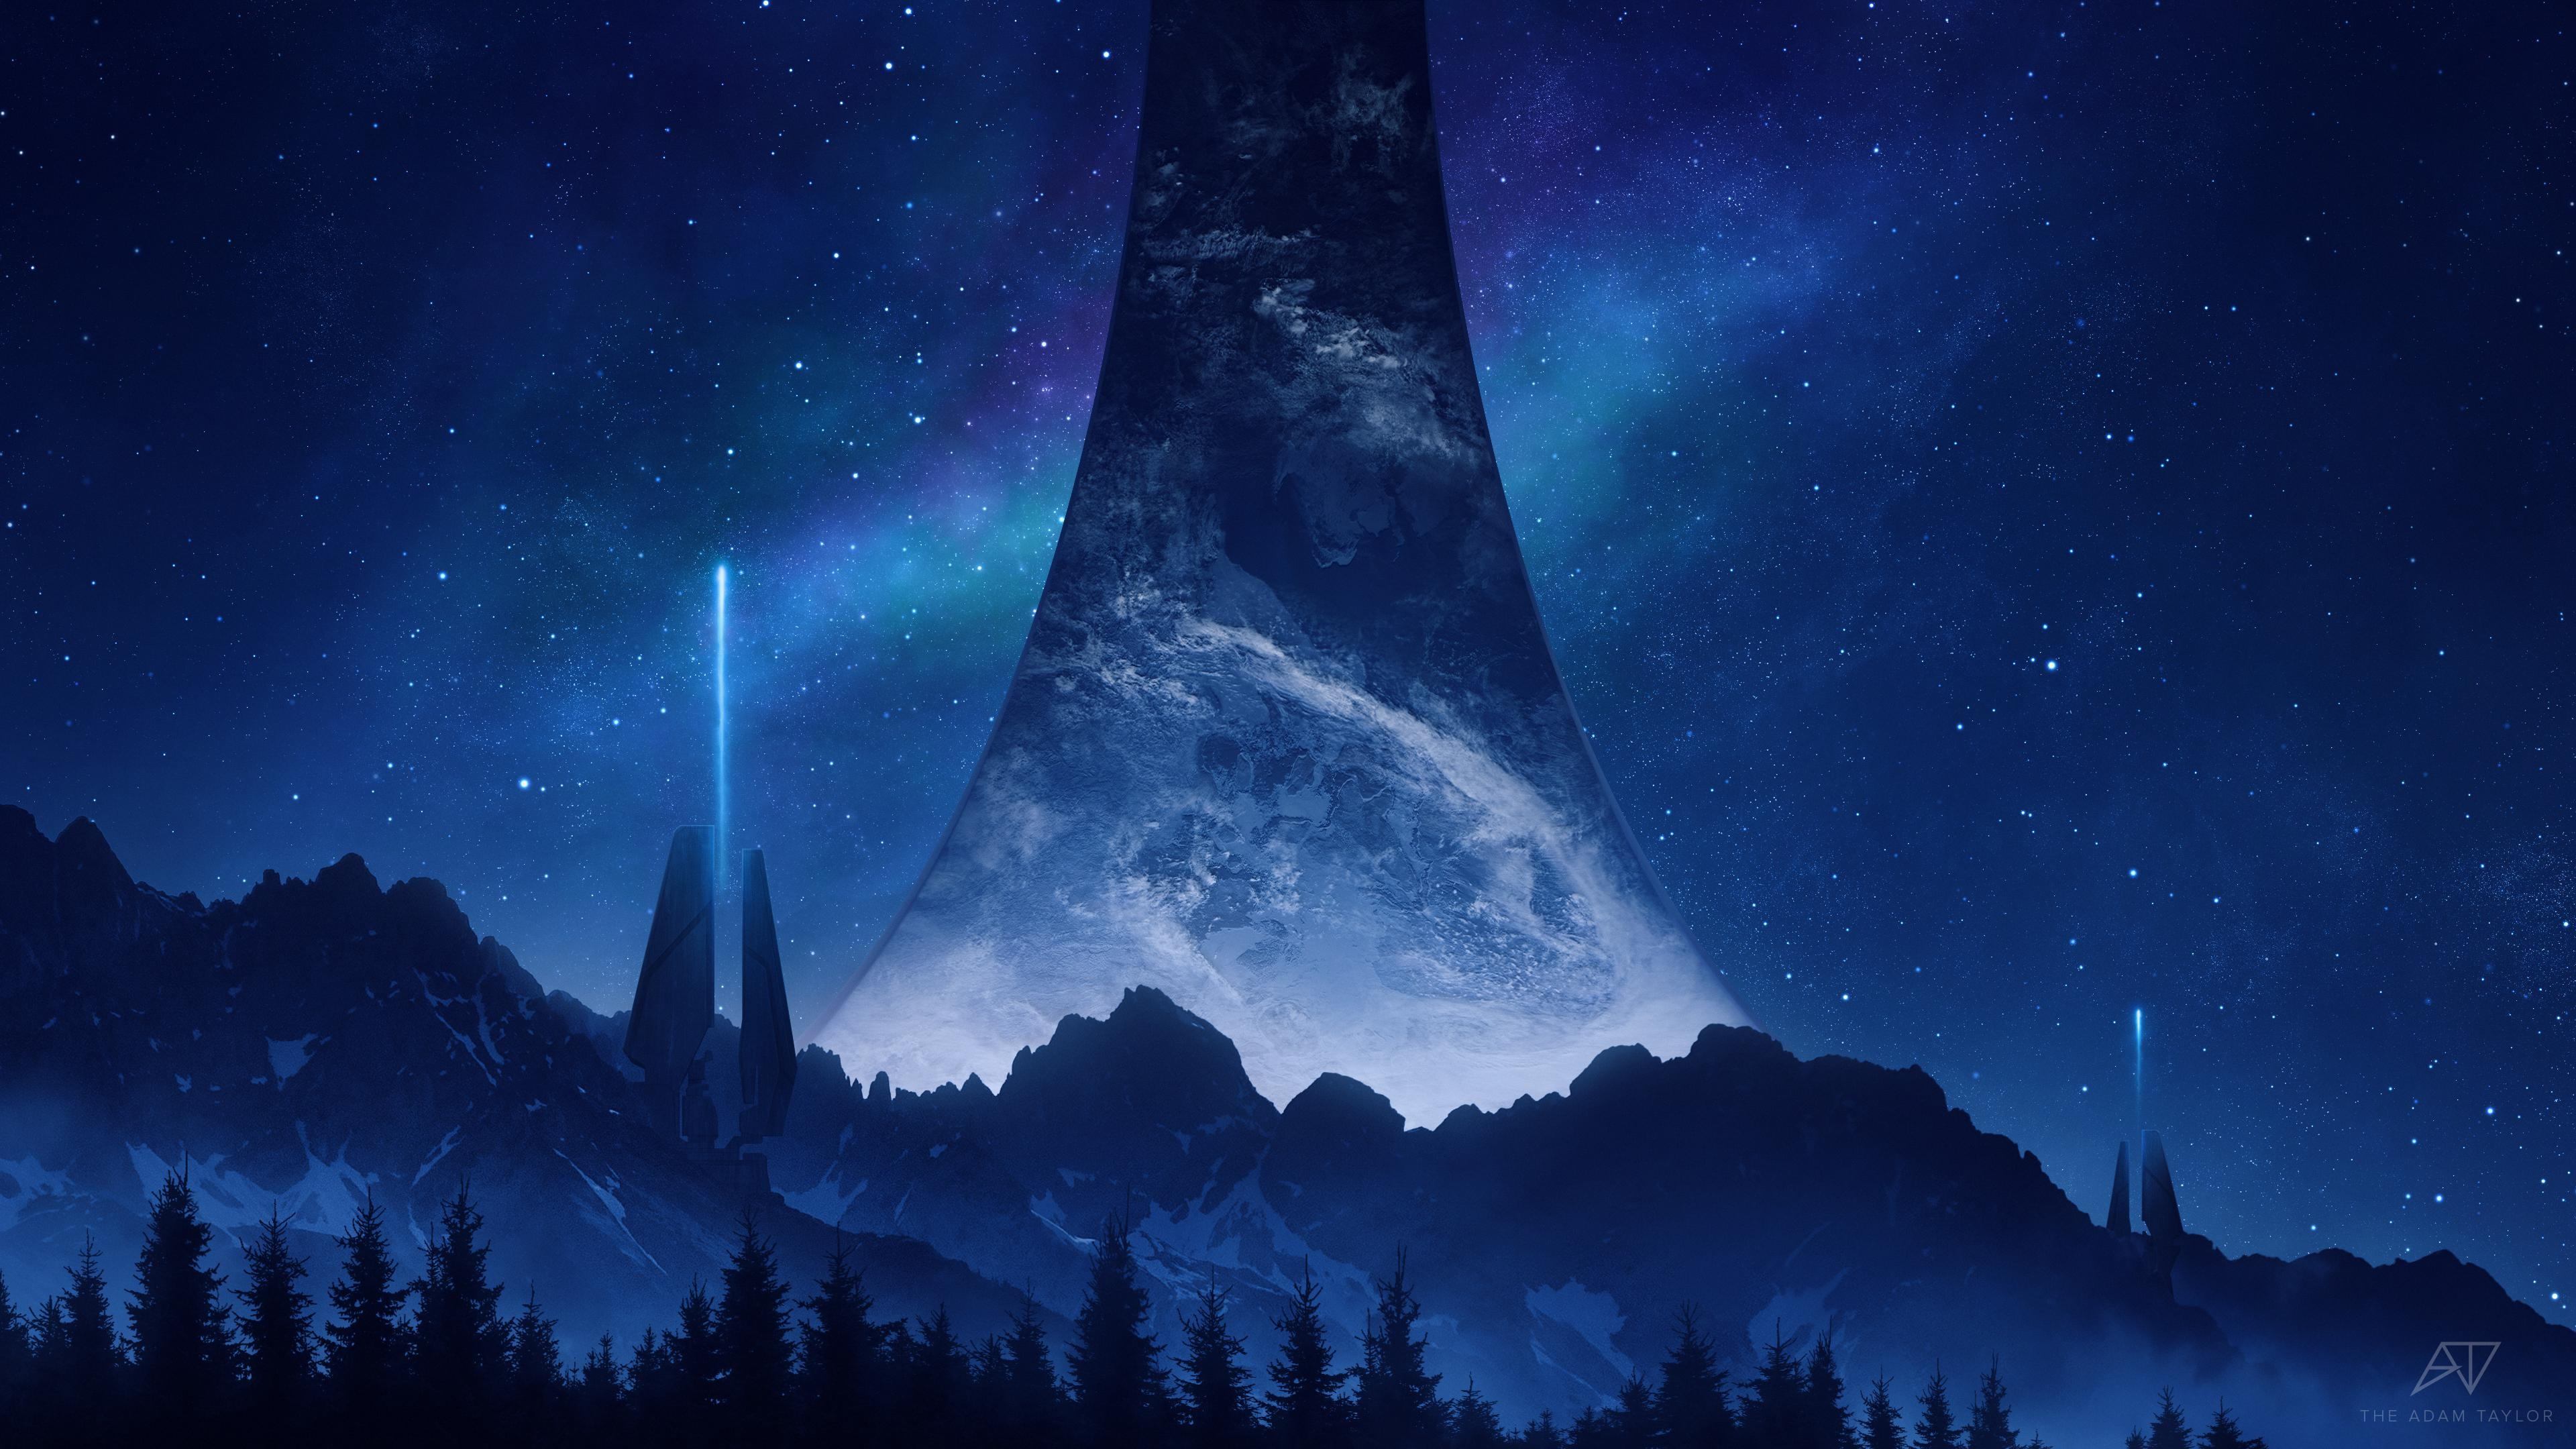 Halo 4k Wallpapers For Your Desktop Or Mobile Screen Free And Easy To Download